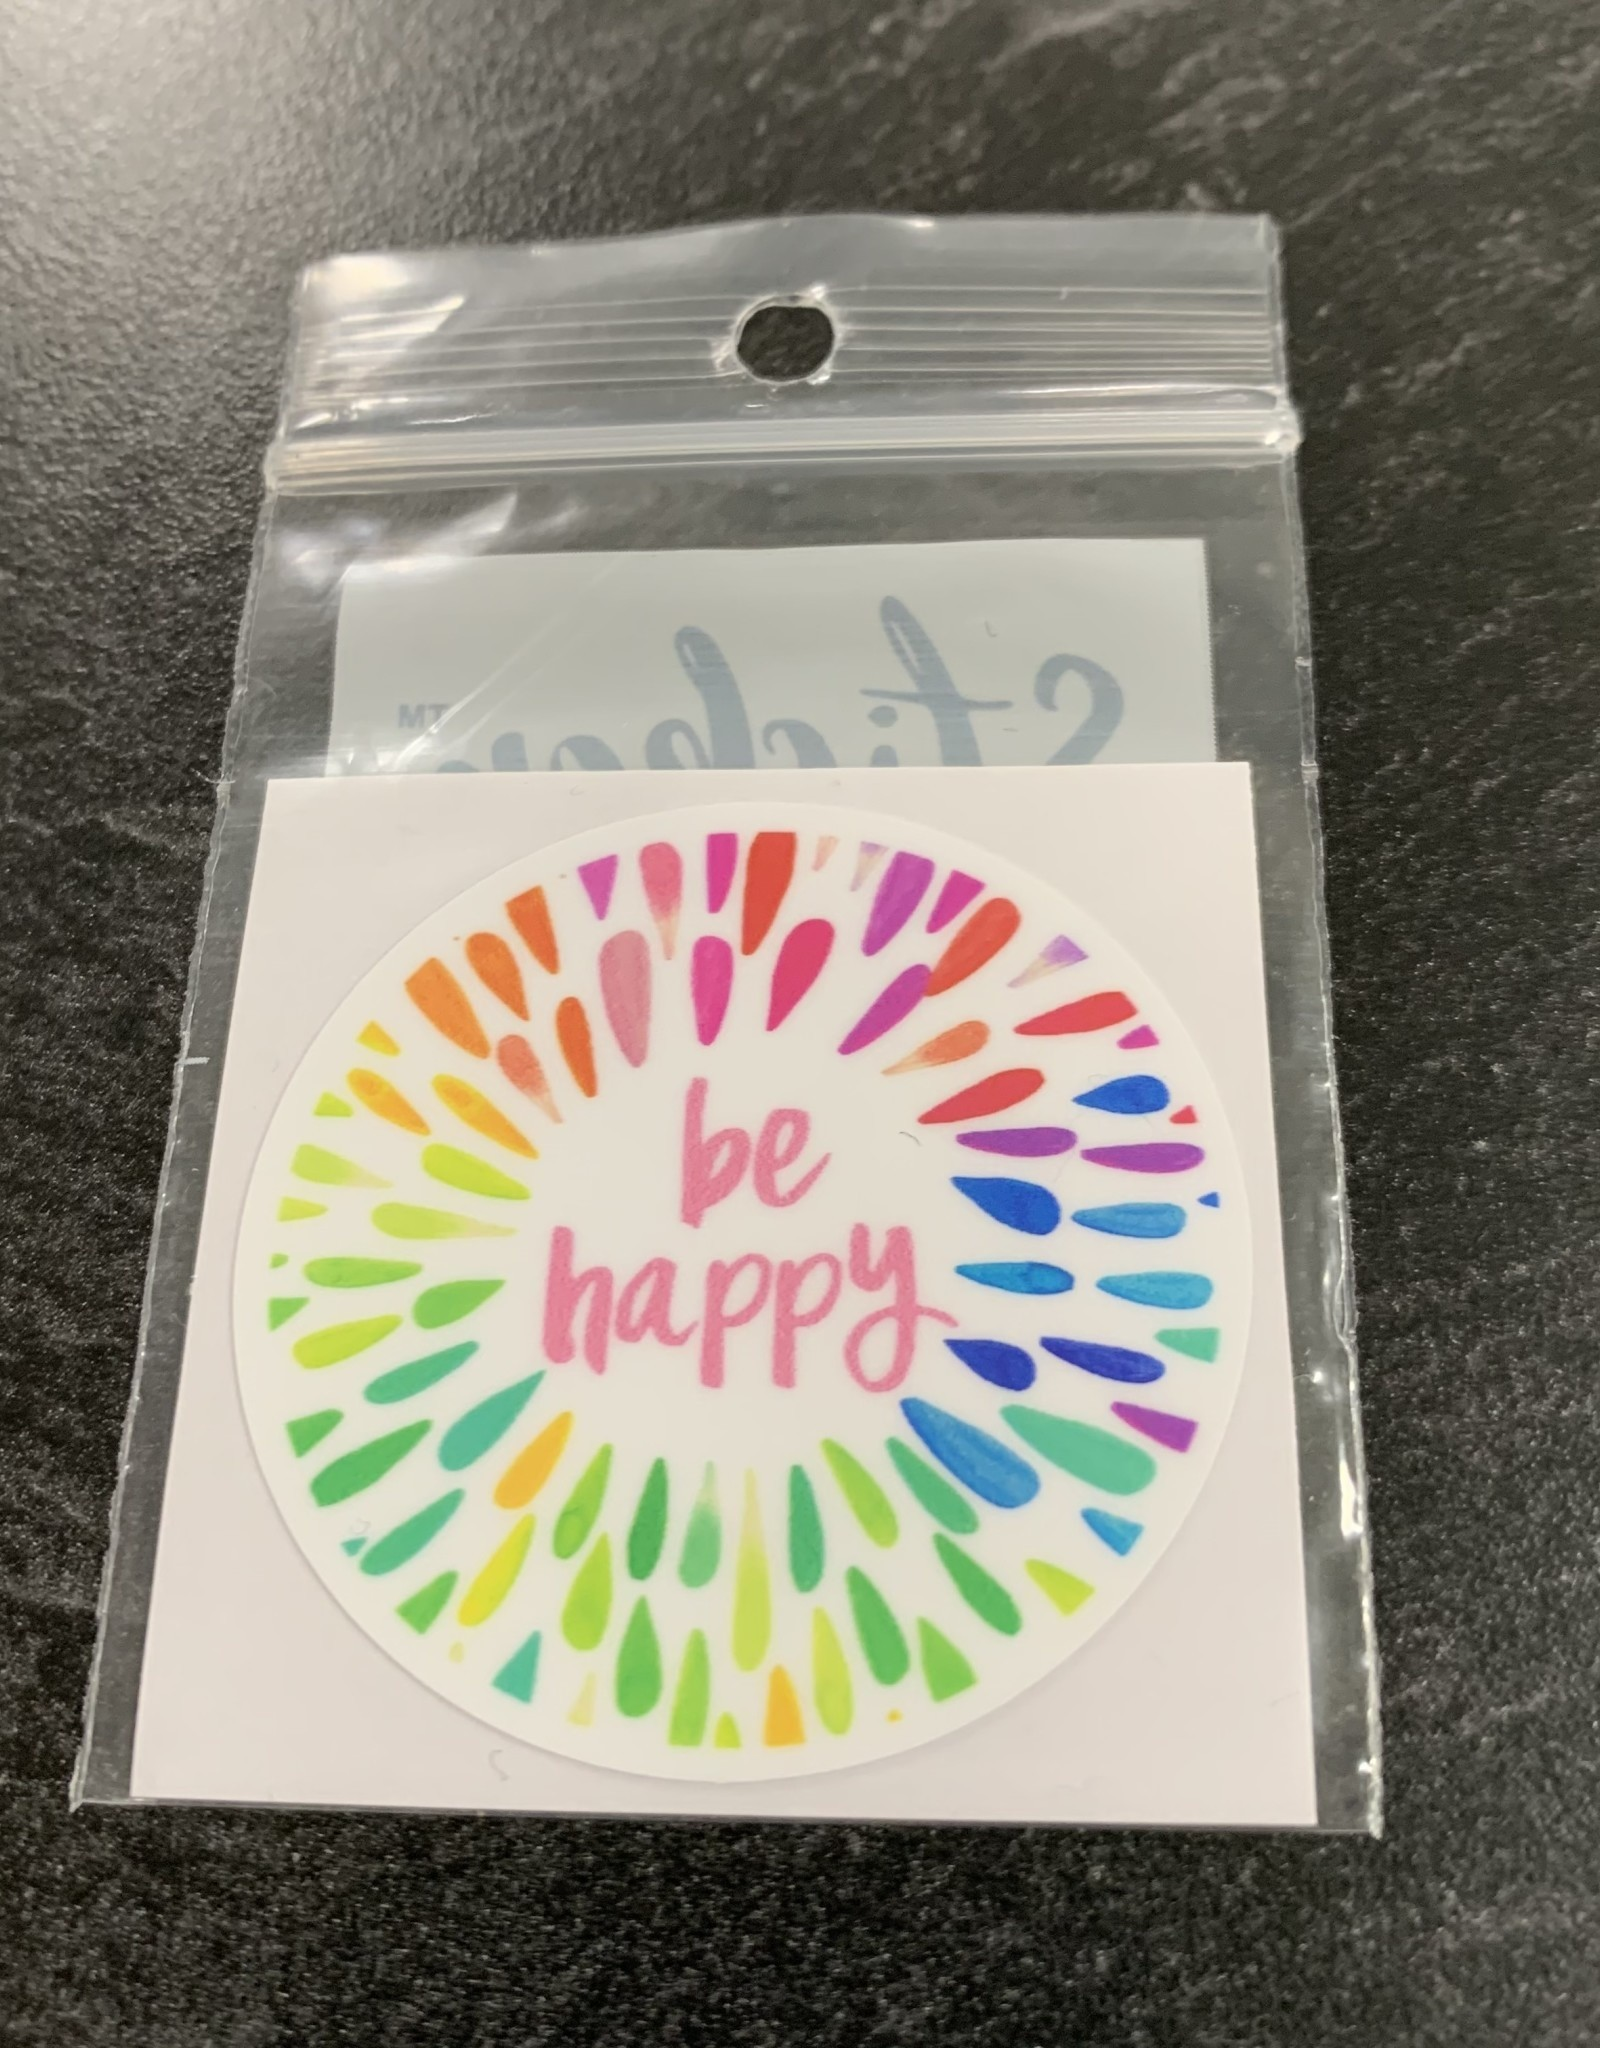 BE HAPPY STICKER (CELL)